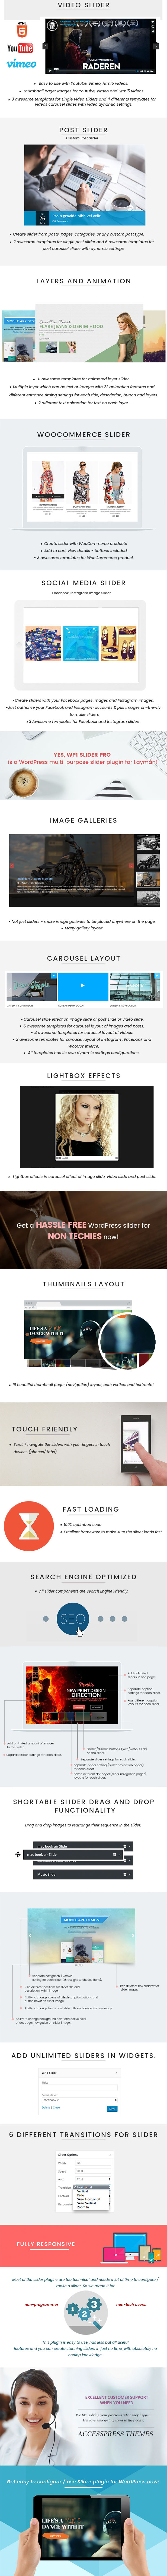 WP1 Slider Pro - WordPress Responsive Touch Slider for a Layman Download